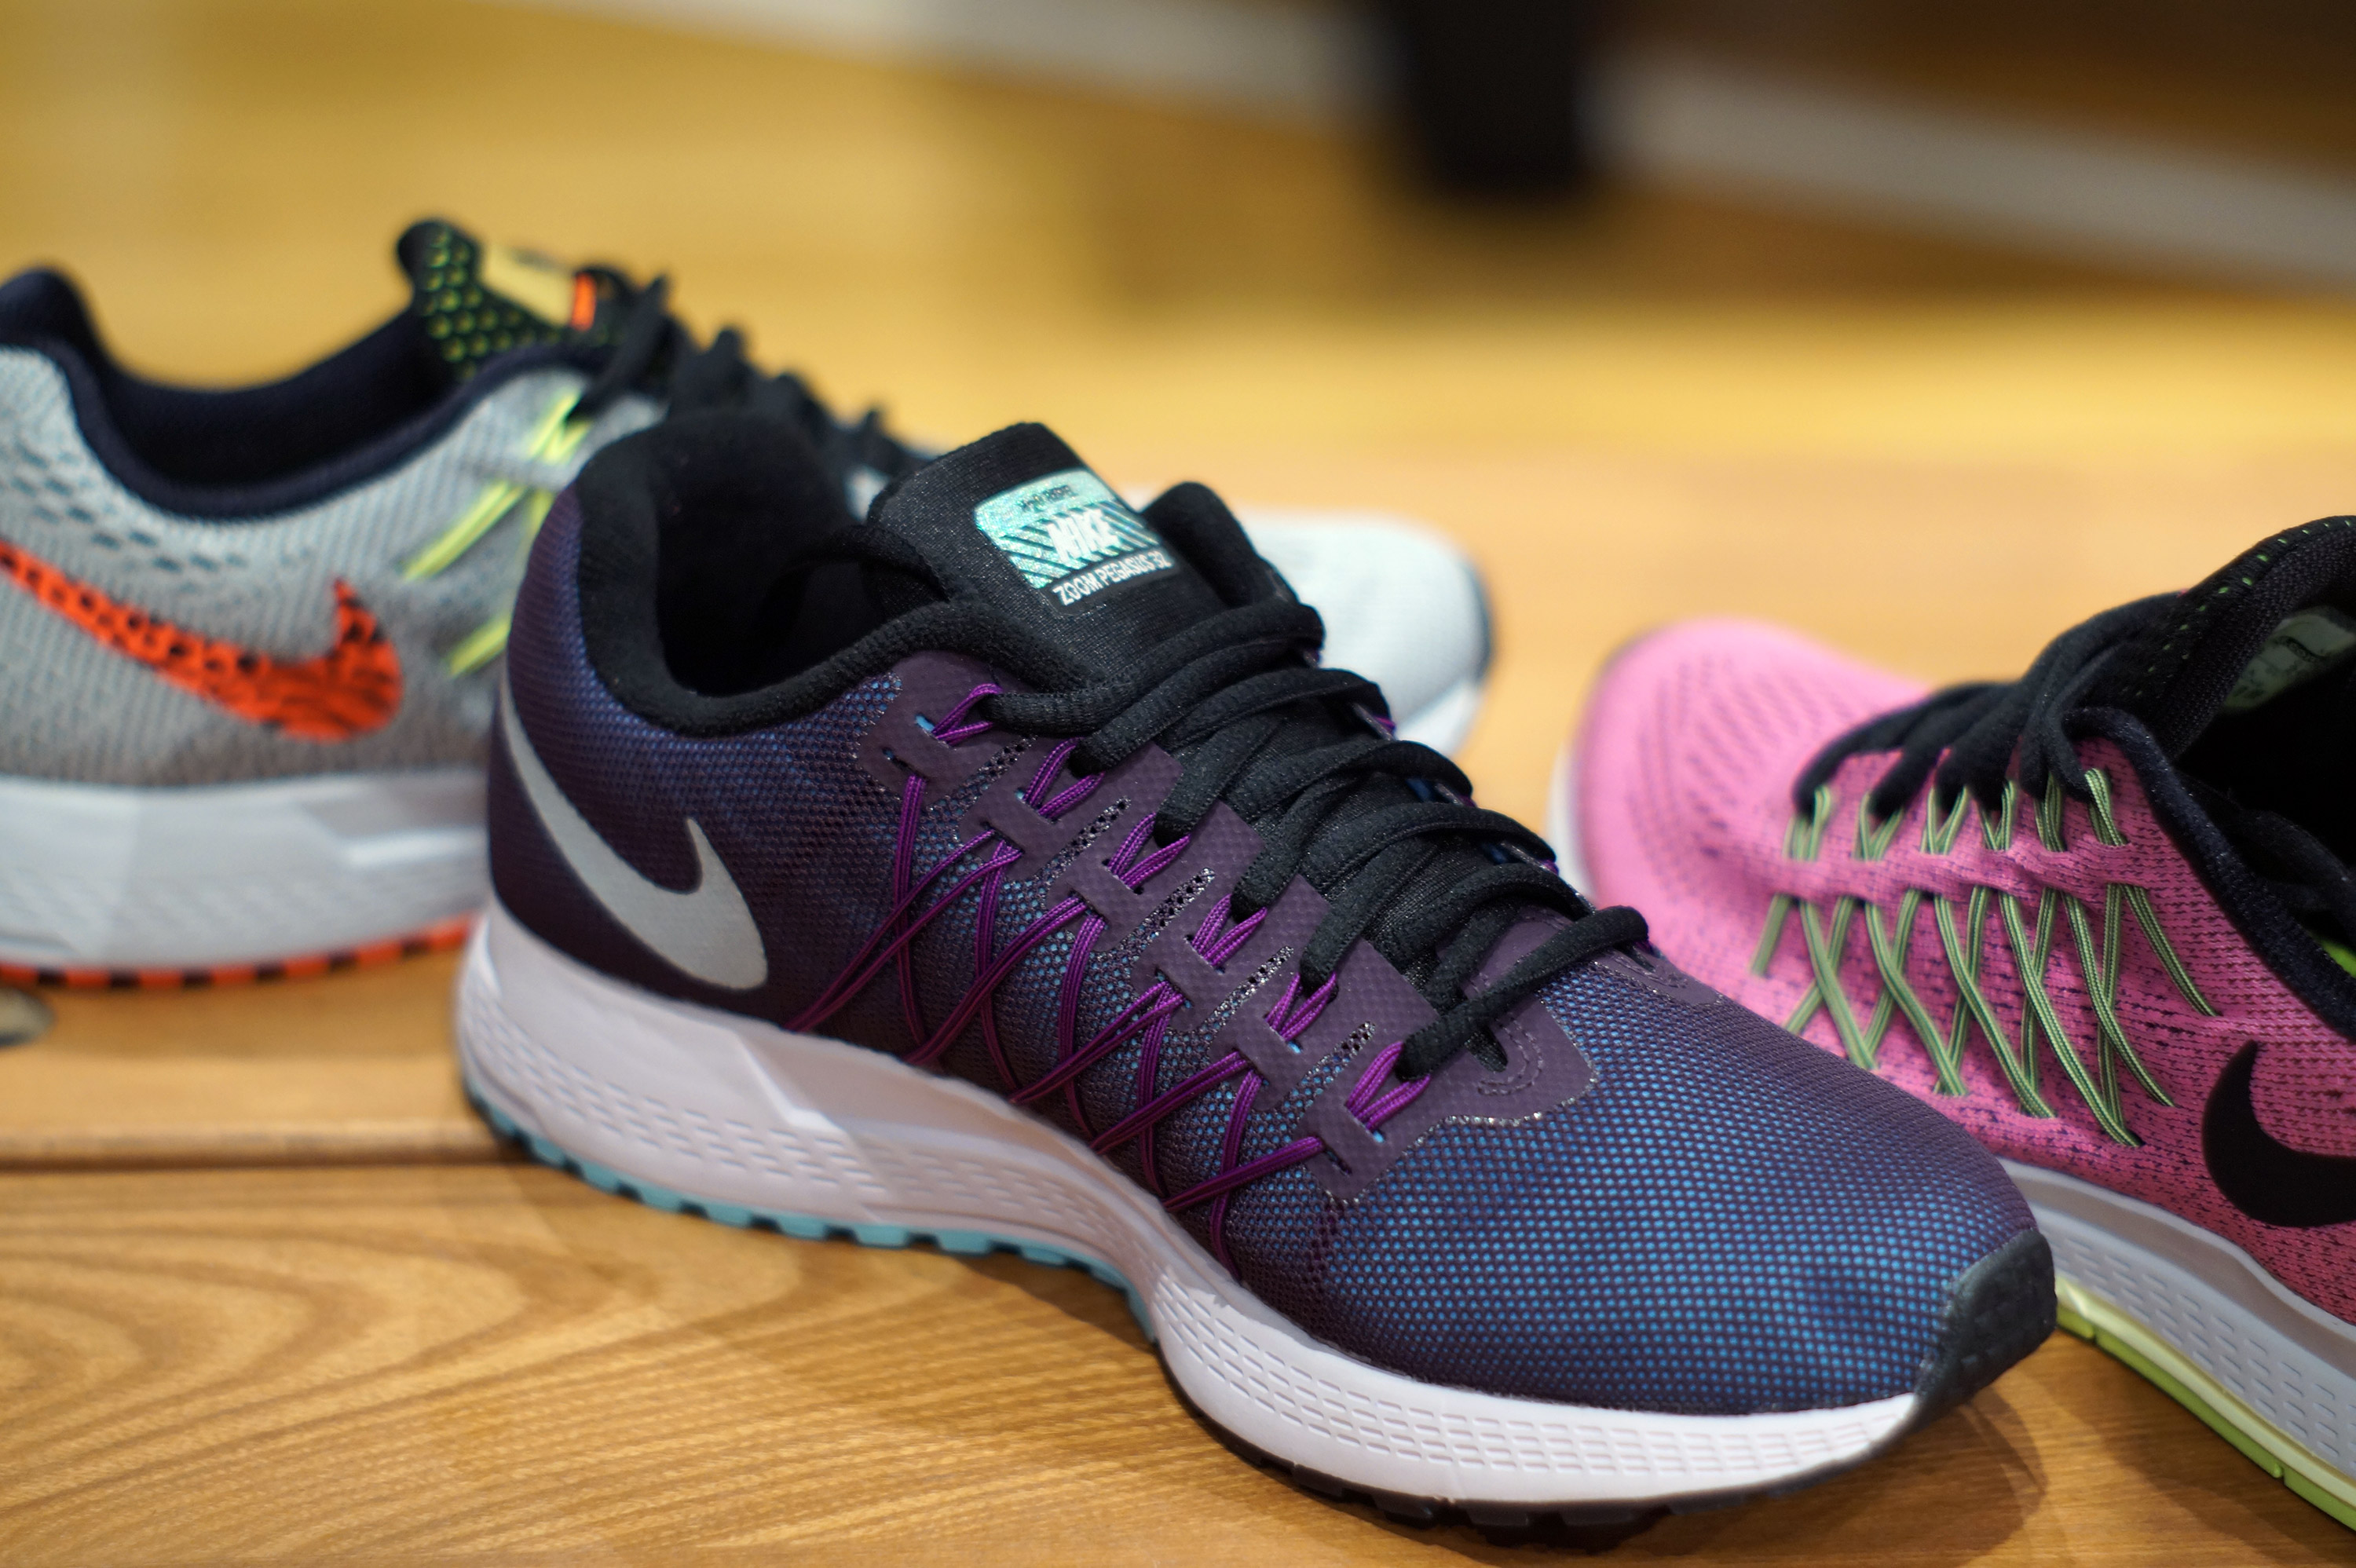 nouvelle arrivee d43fa 37a5f Nike Air Zoom Pegasus 32 Running Shoe Review ...